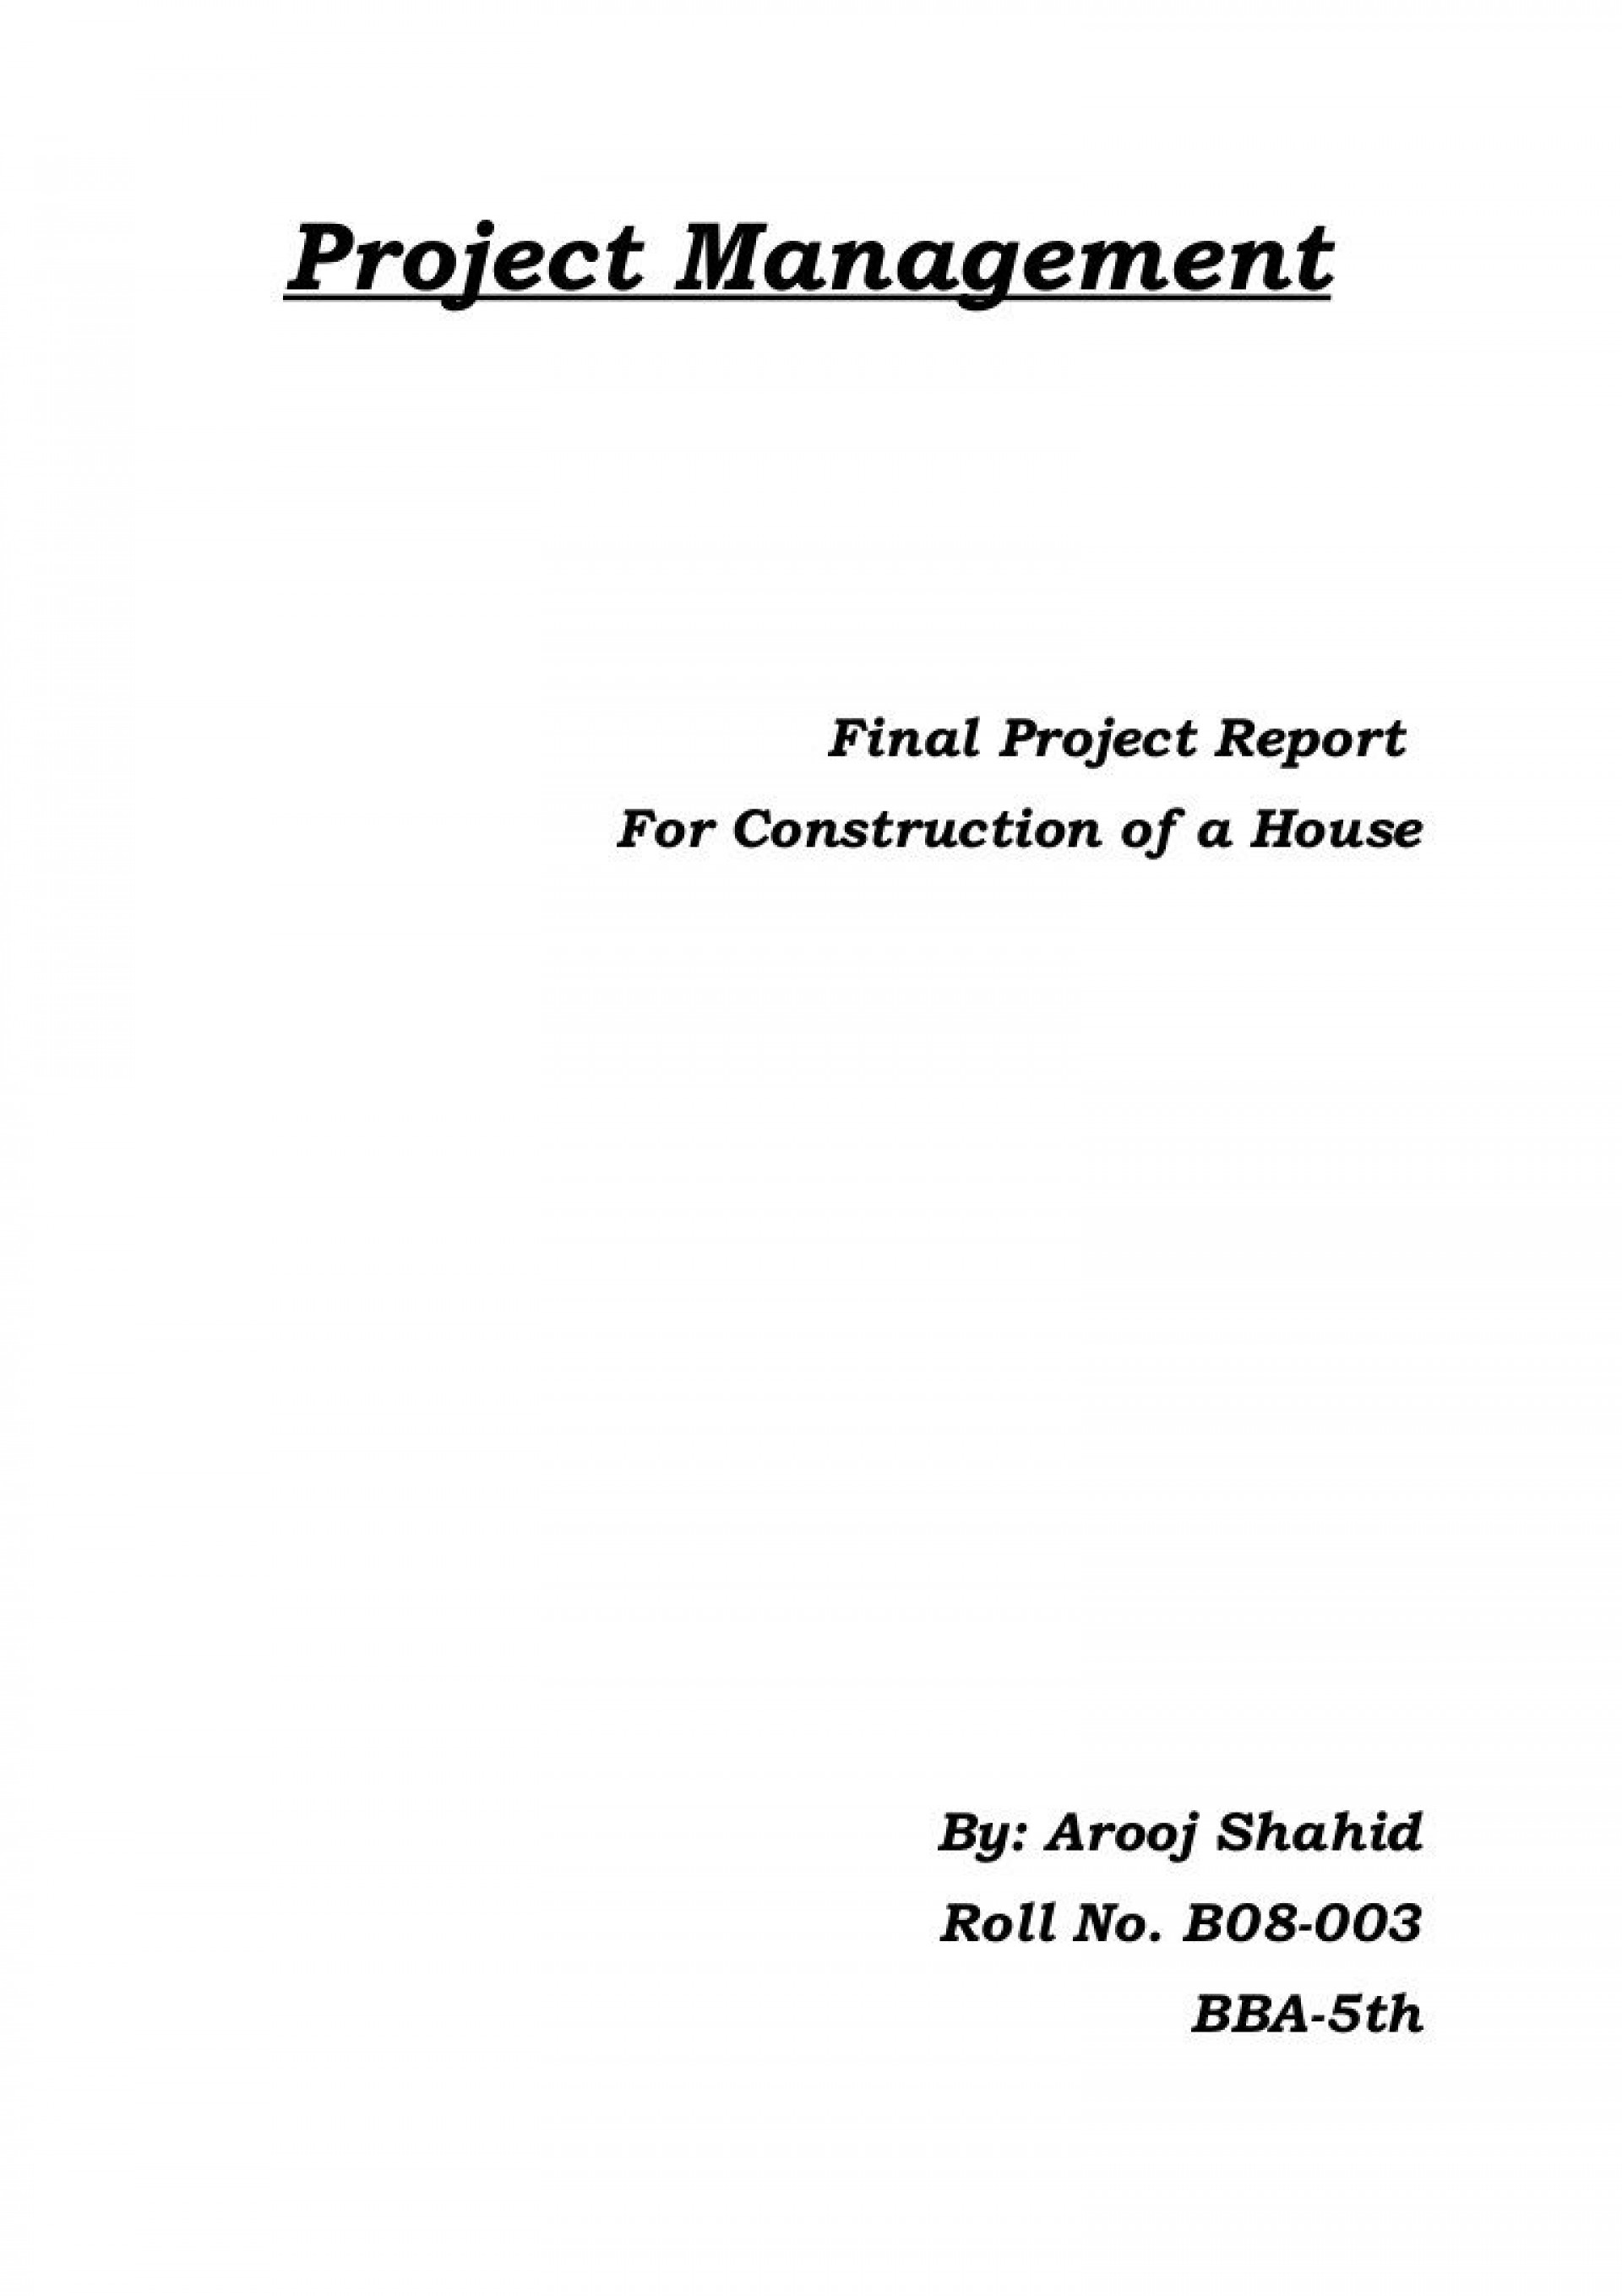 004 Sensational Project Management Report Format Highest Quality  Template Word Free Example Pdf1920